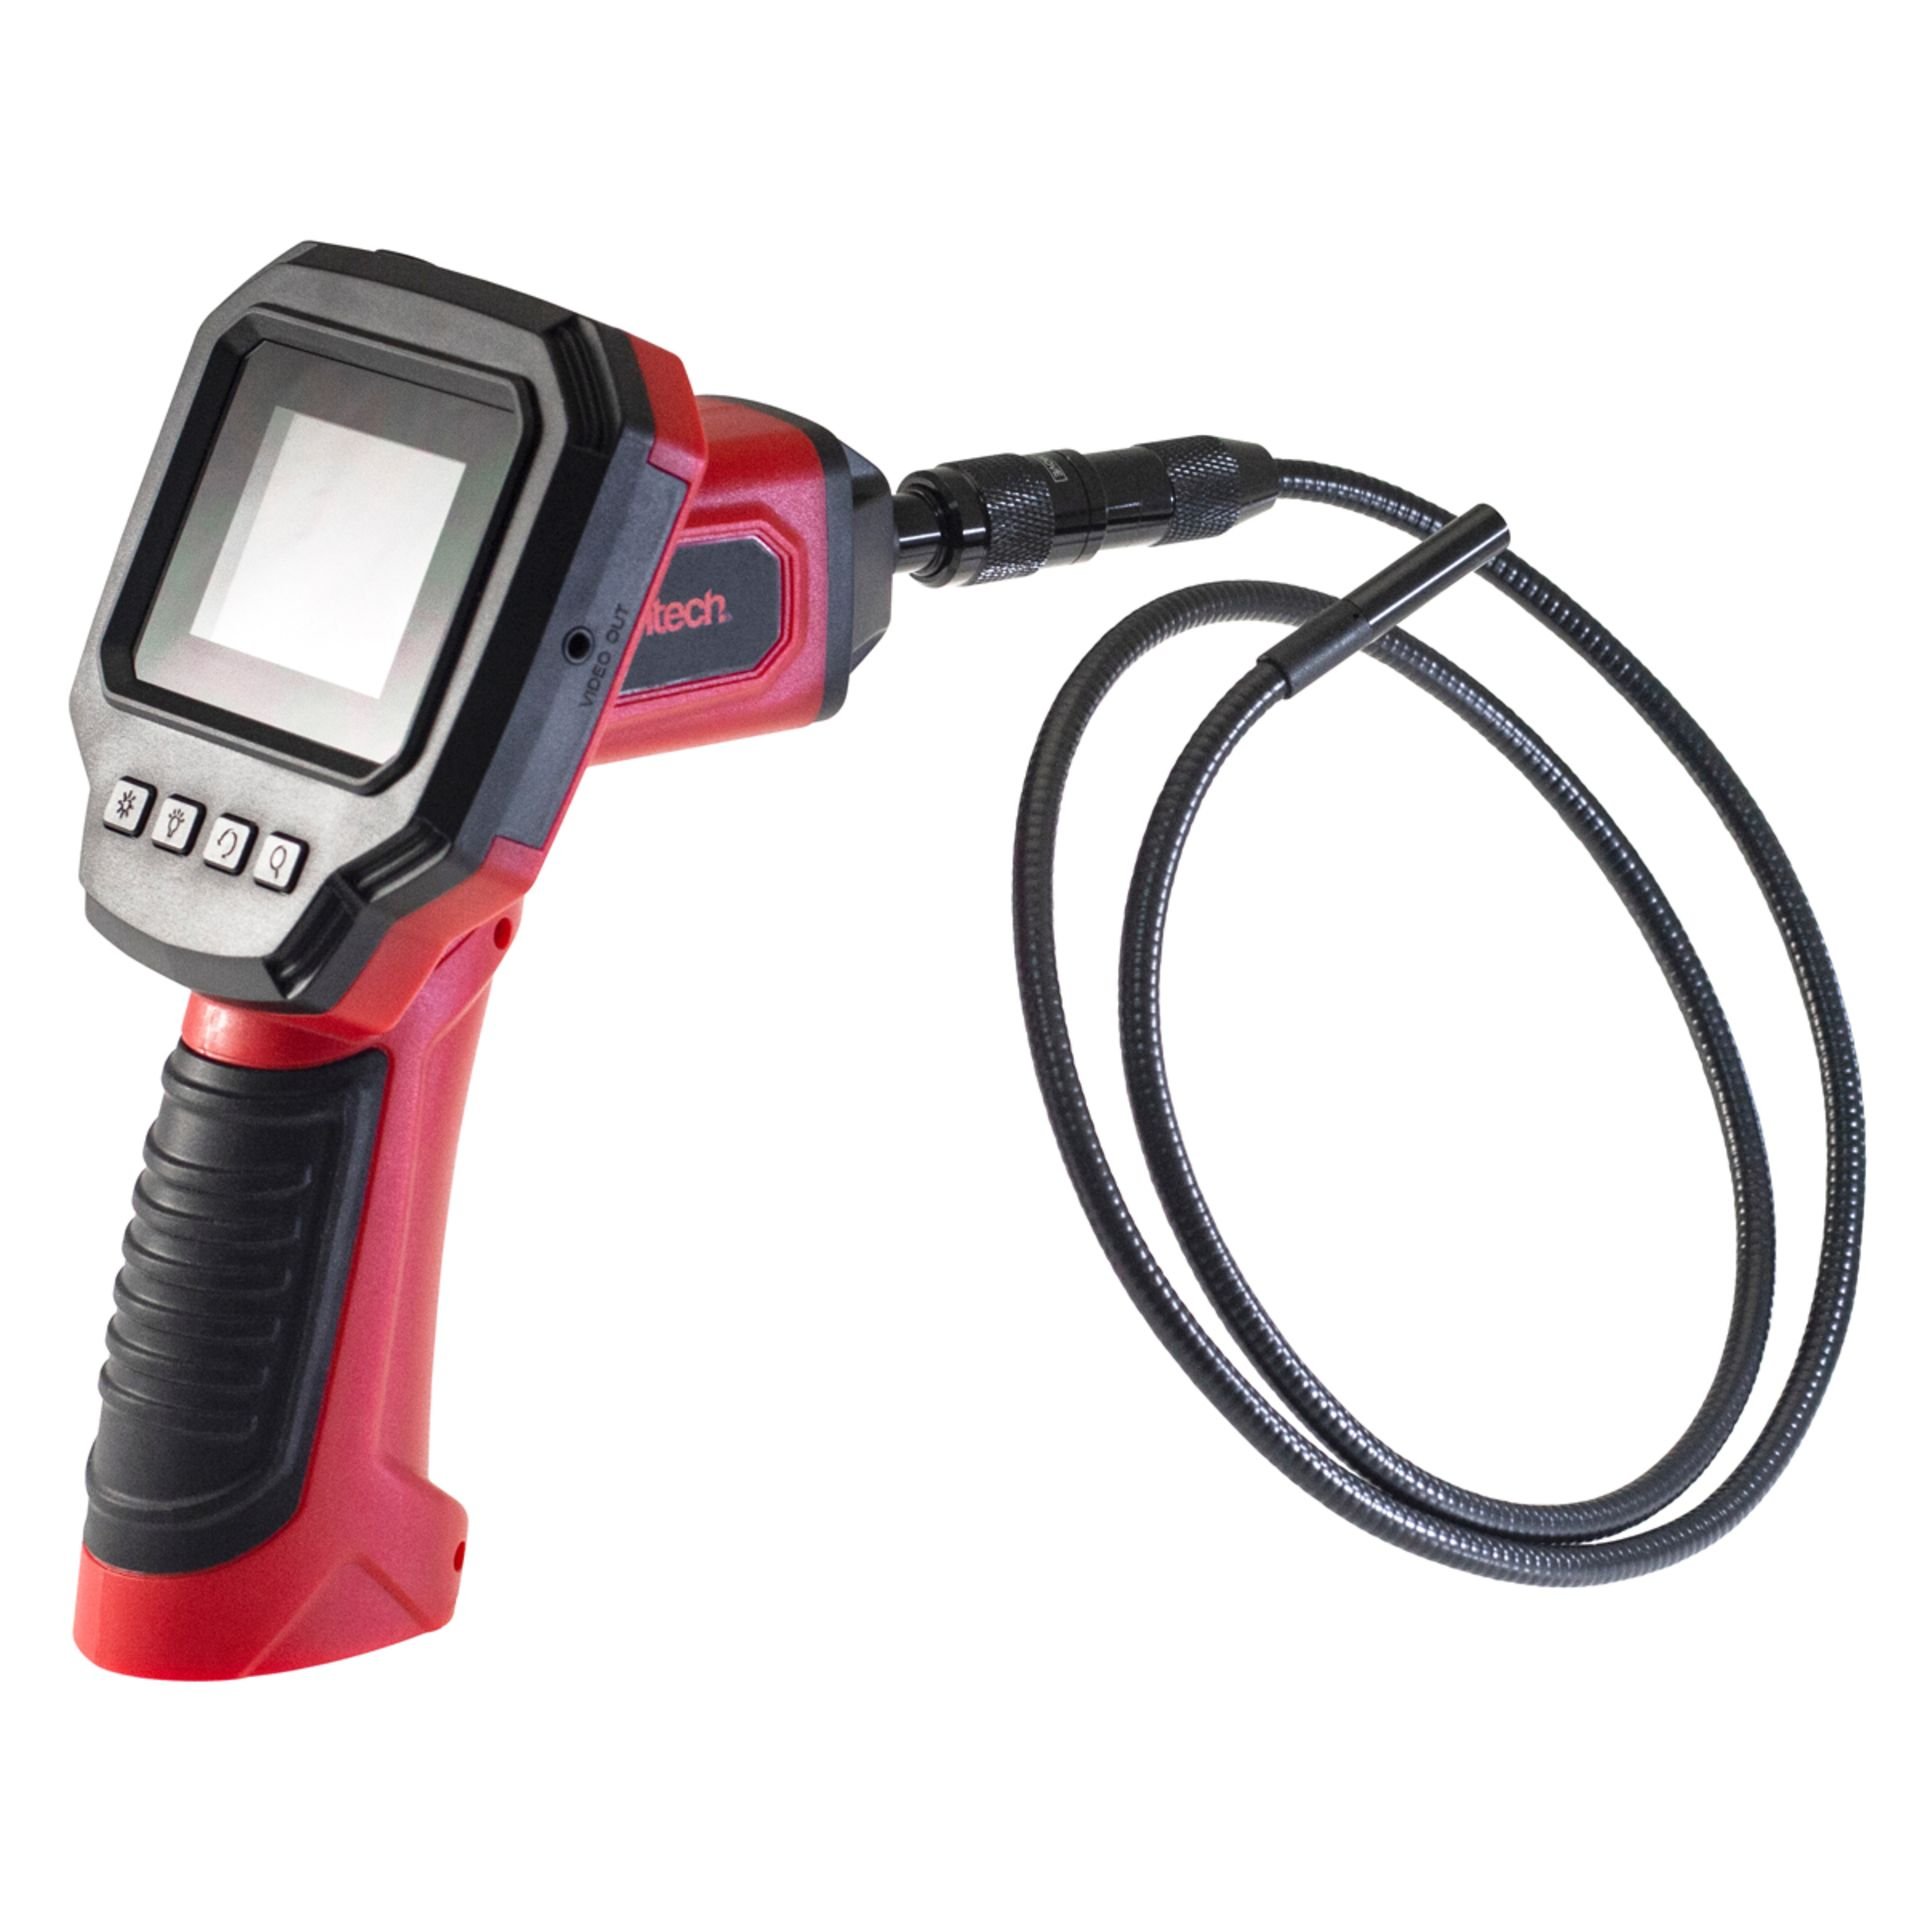 Lot 11454 - V Brand New 2.4 Inch Colour LCD Inspection Camera - Adjustable Backlit LED Screen